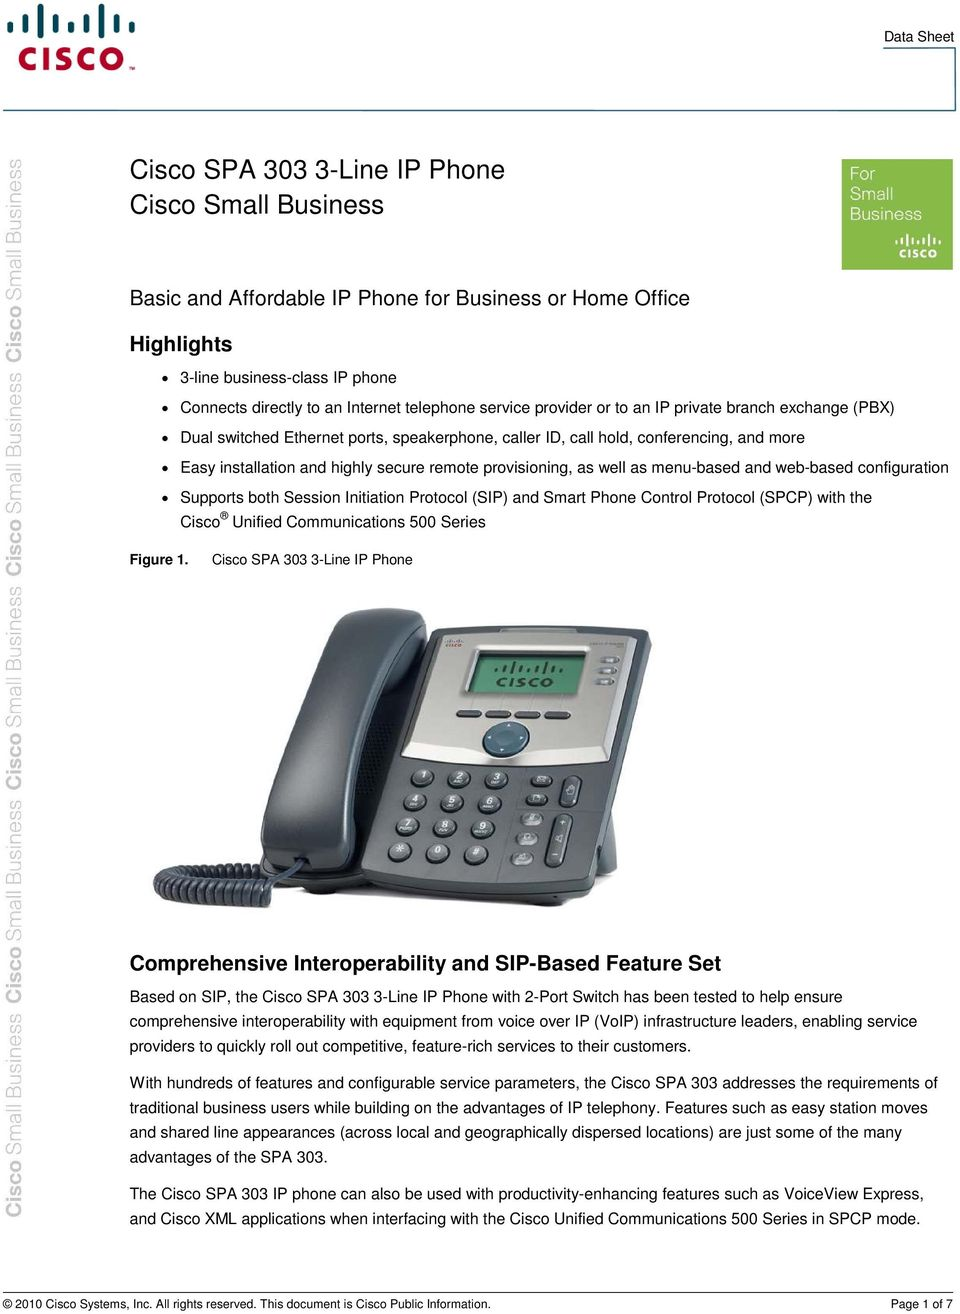 provisioning, as well as menu-based and web-based configuration Supports both Session Initiation Protocol (SIP) and Smart Phone Control Protocol (SPCP) with the Cisco Unified Communications 500